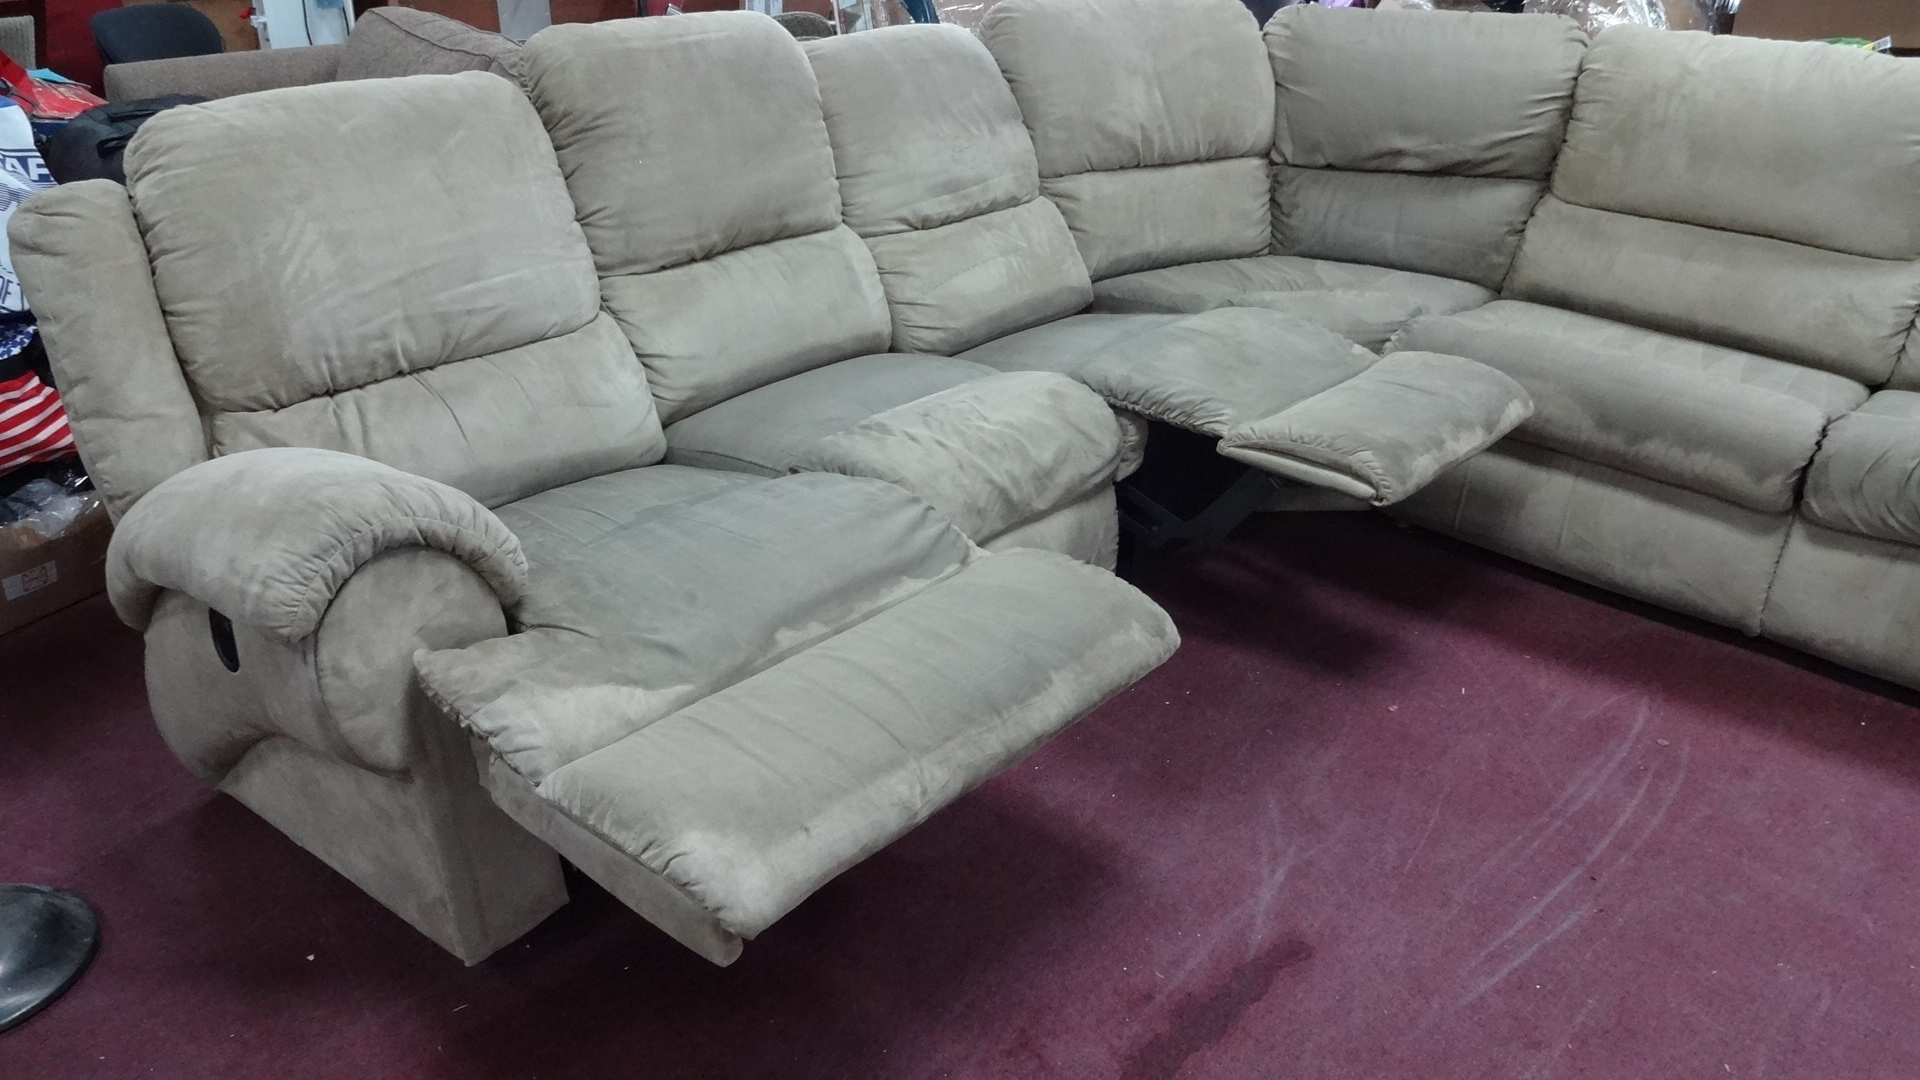 Lazy Boy Sofa Bed Sectional • Sofa Bed Pertaining To The Brick Sectional Sofas (Image 7 of 10)